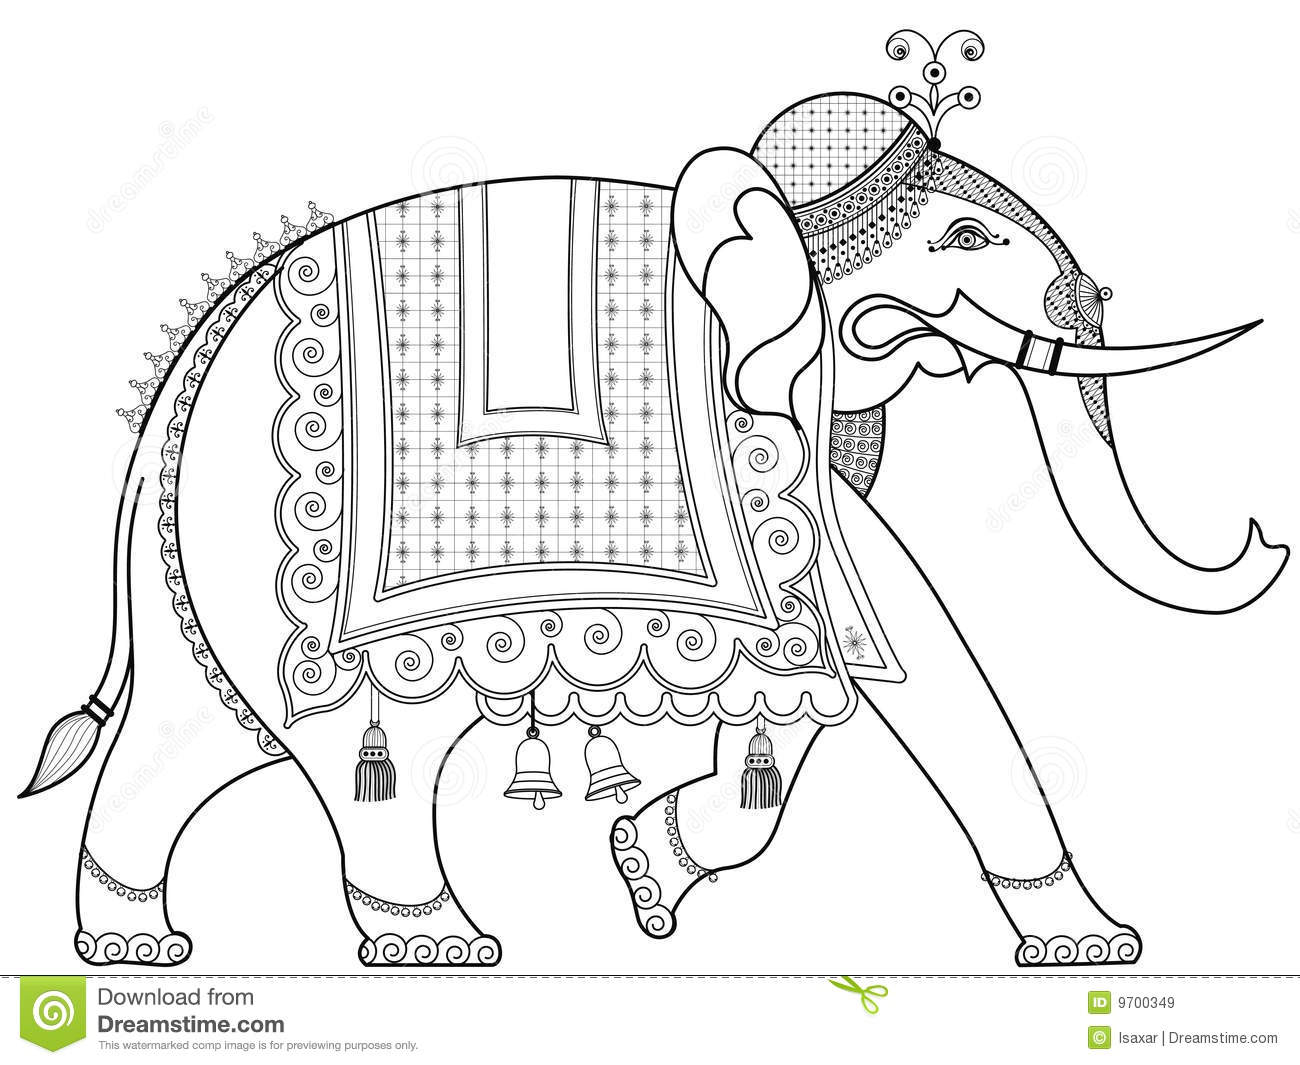 Decorated Indian elephant stock vector. Illustration of indian - 9700349